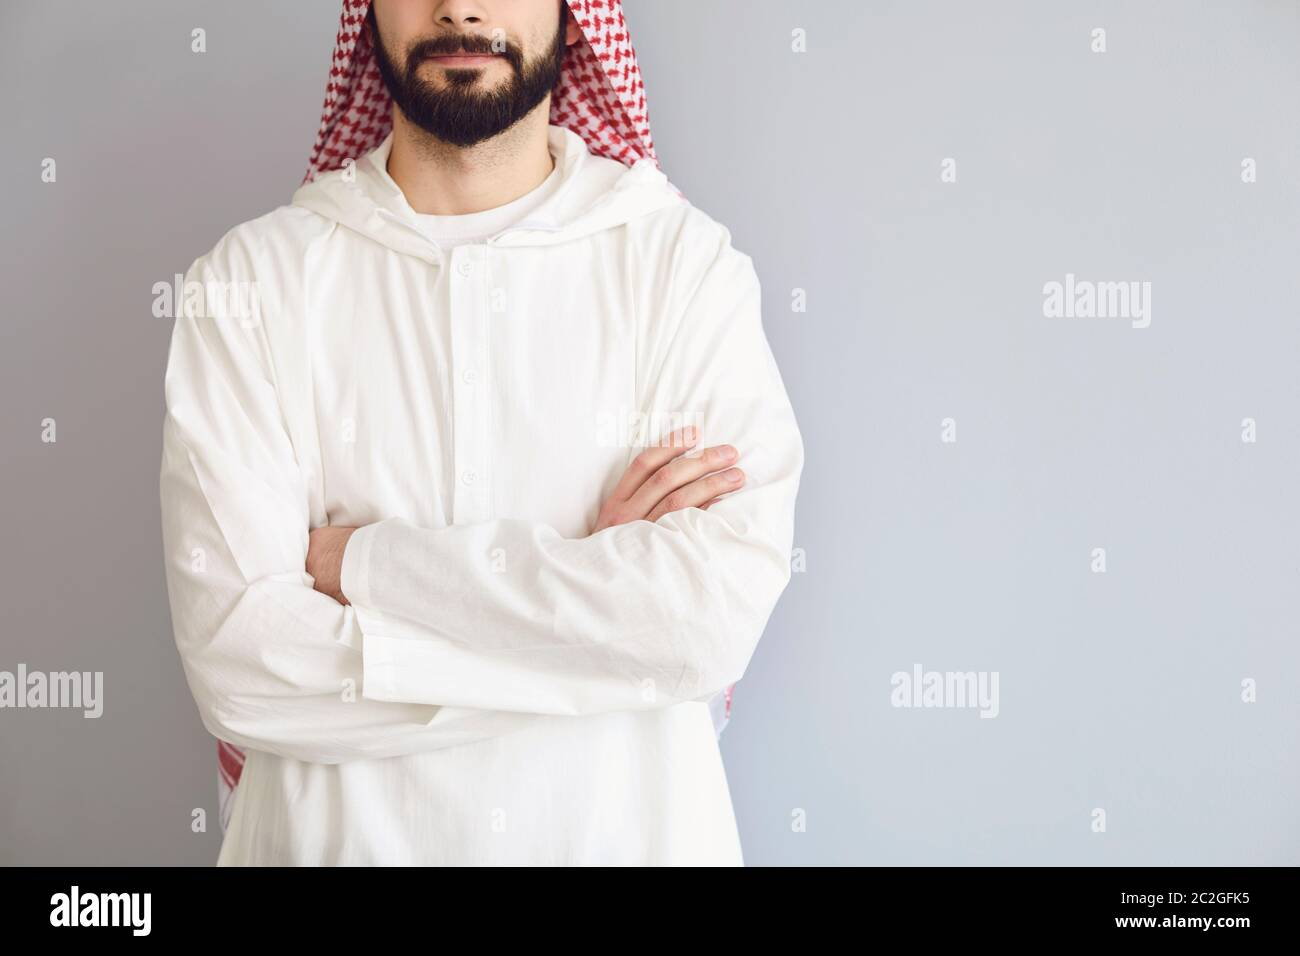 Confident arabic man faceless crossed his arms on a gray background Stock Photo